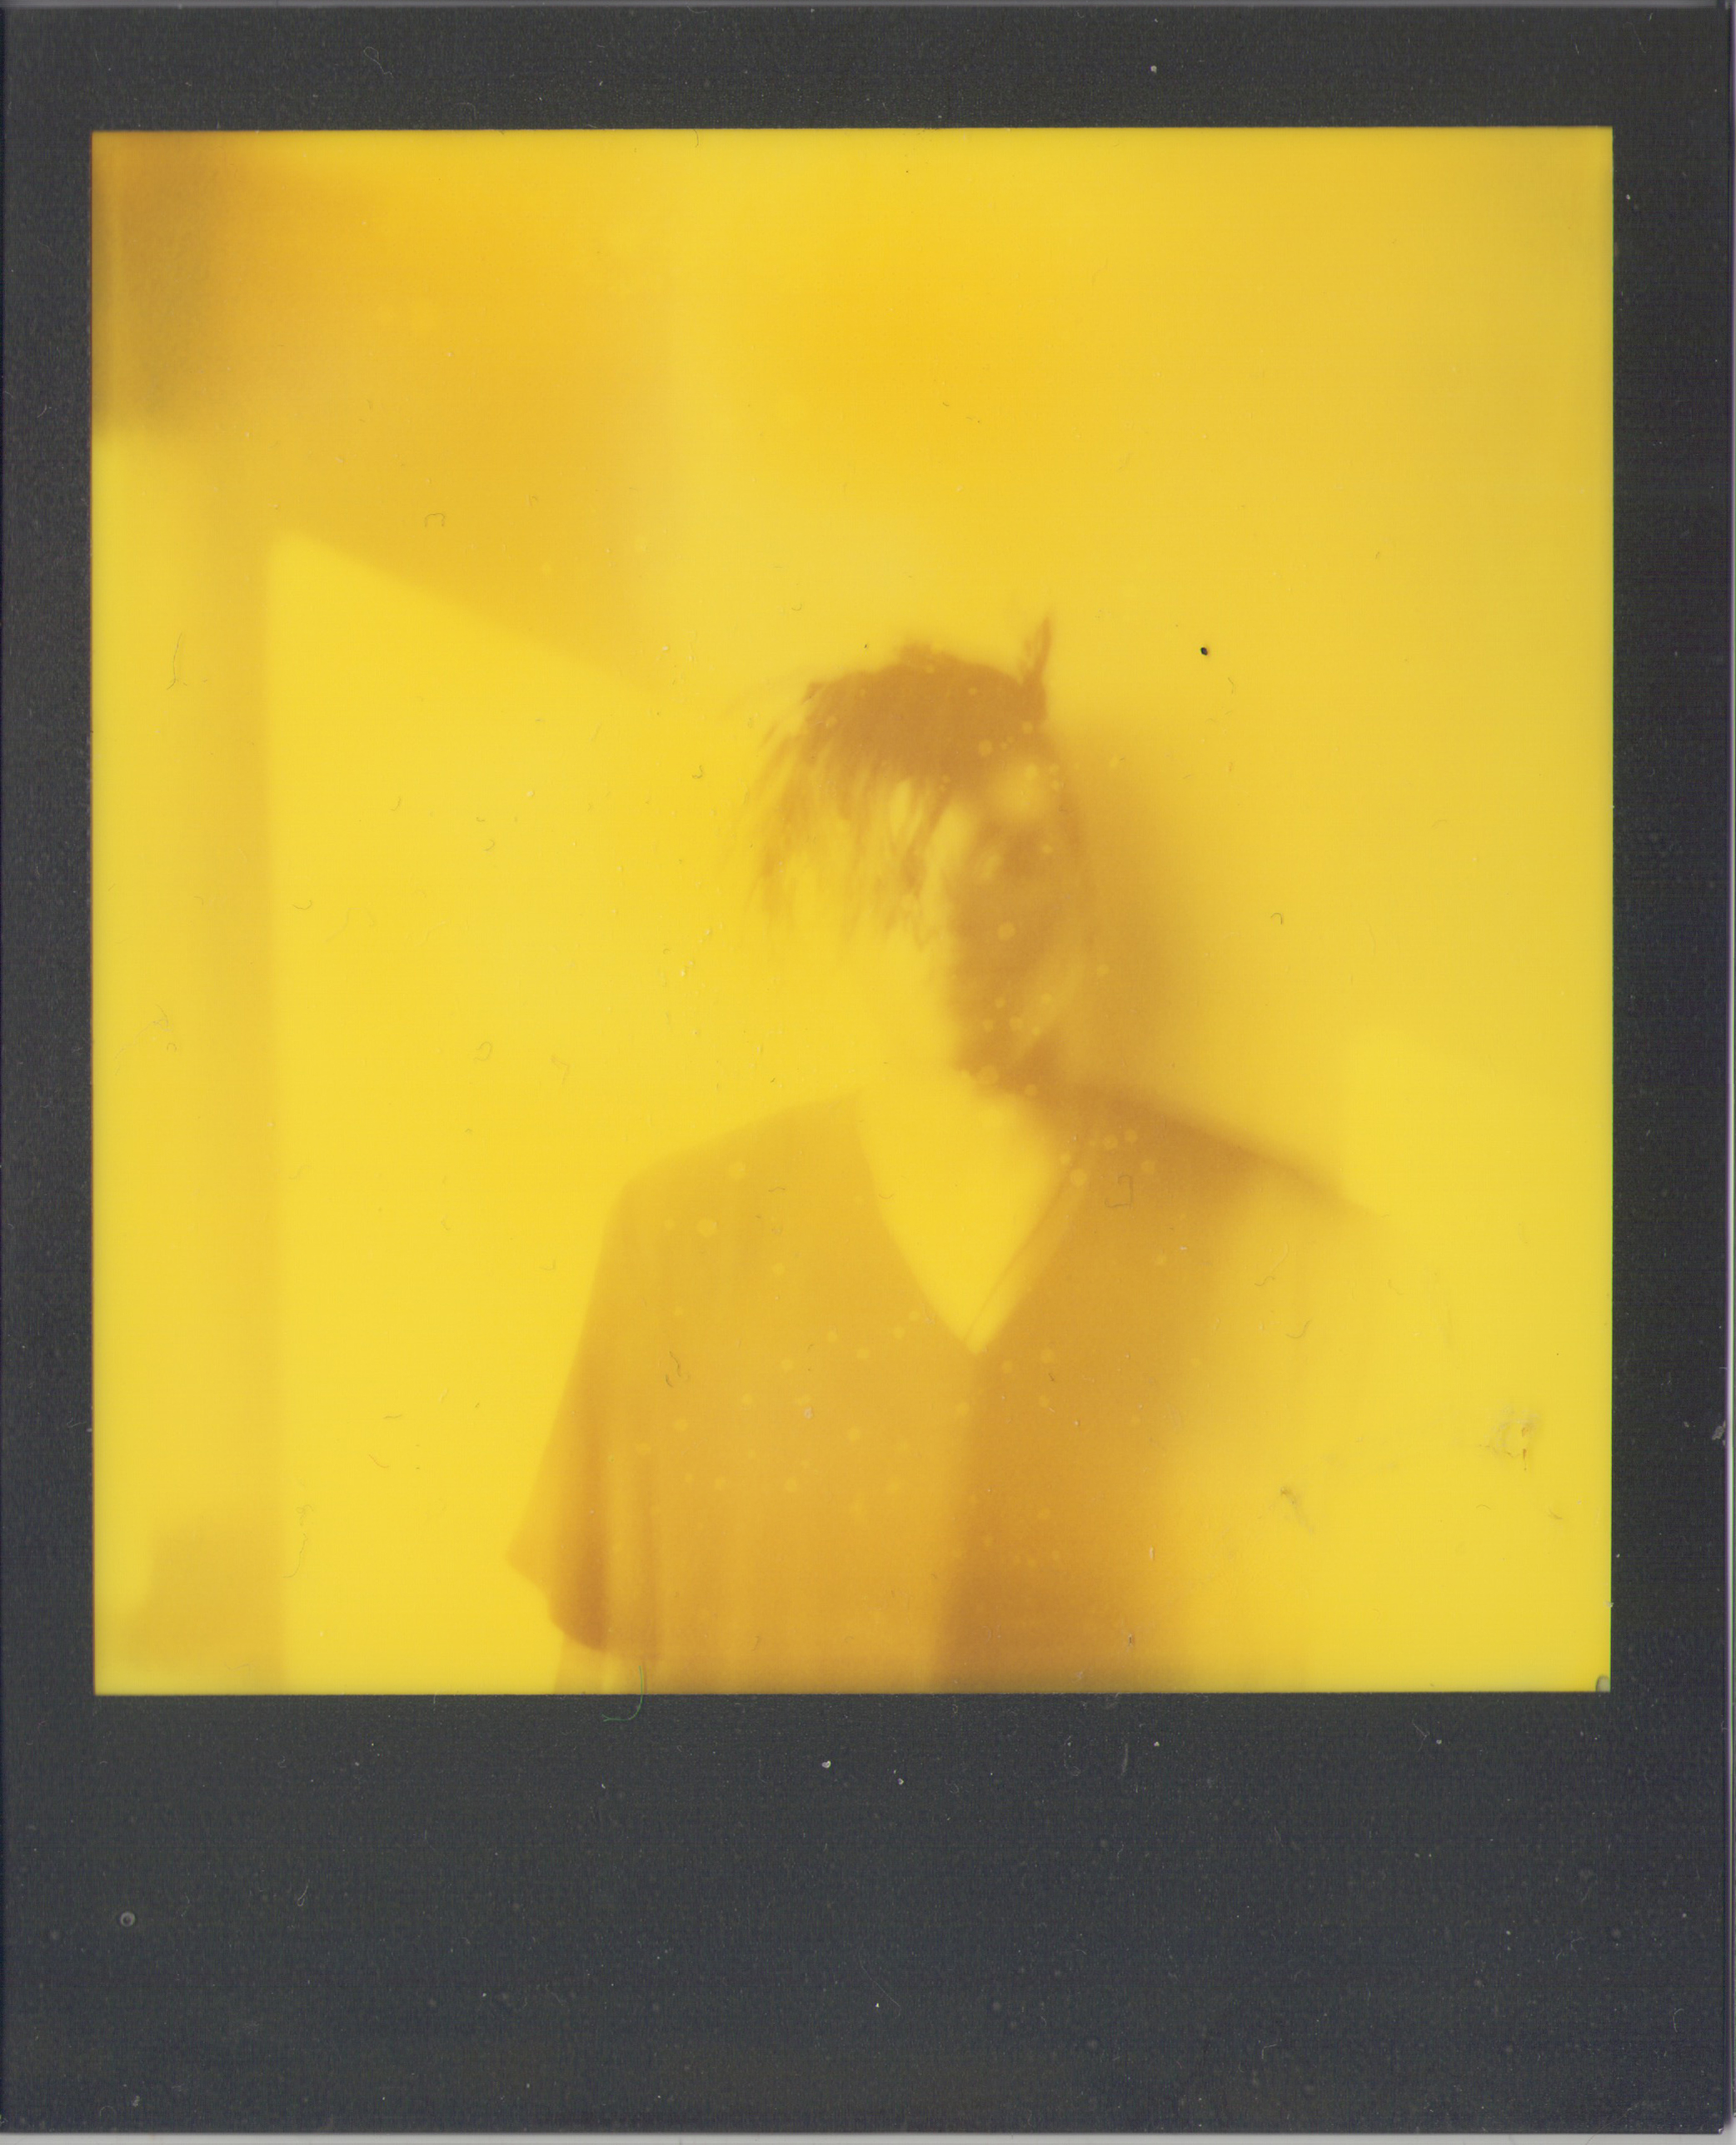 Polaroid outtake of Nigel Edwards from the studio.